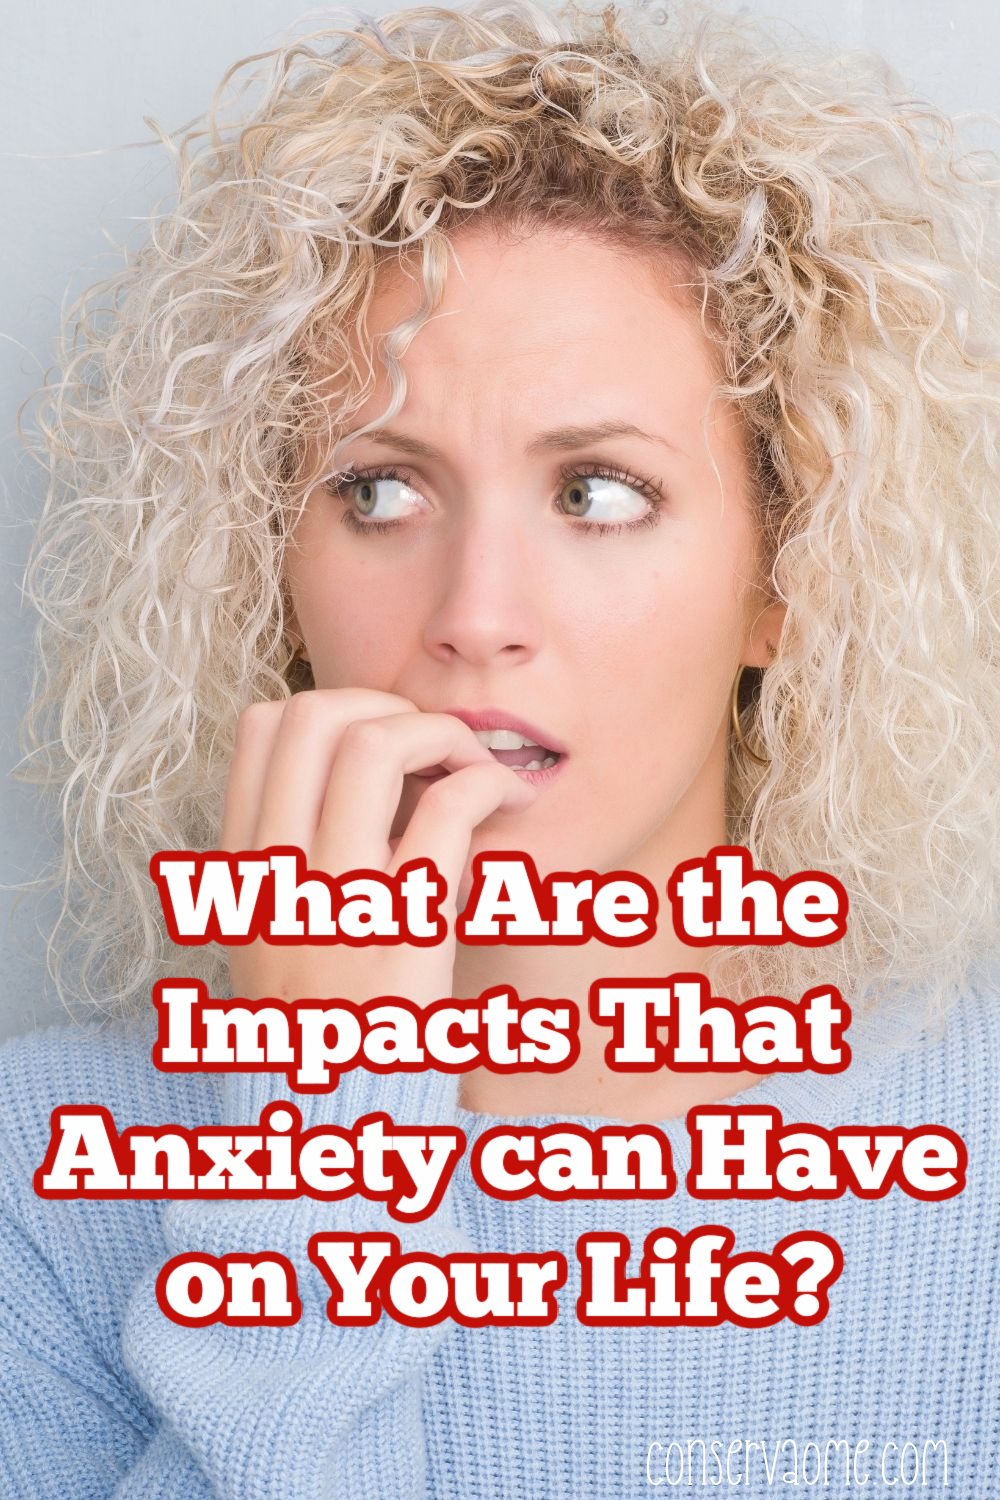 What Are the Impacts that anxiety can have on your life?